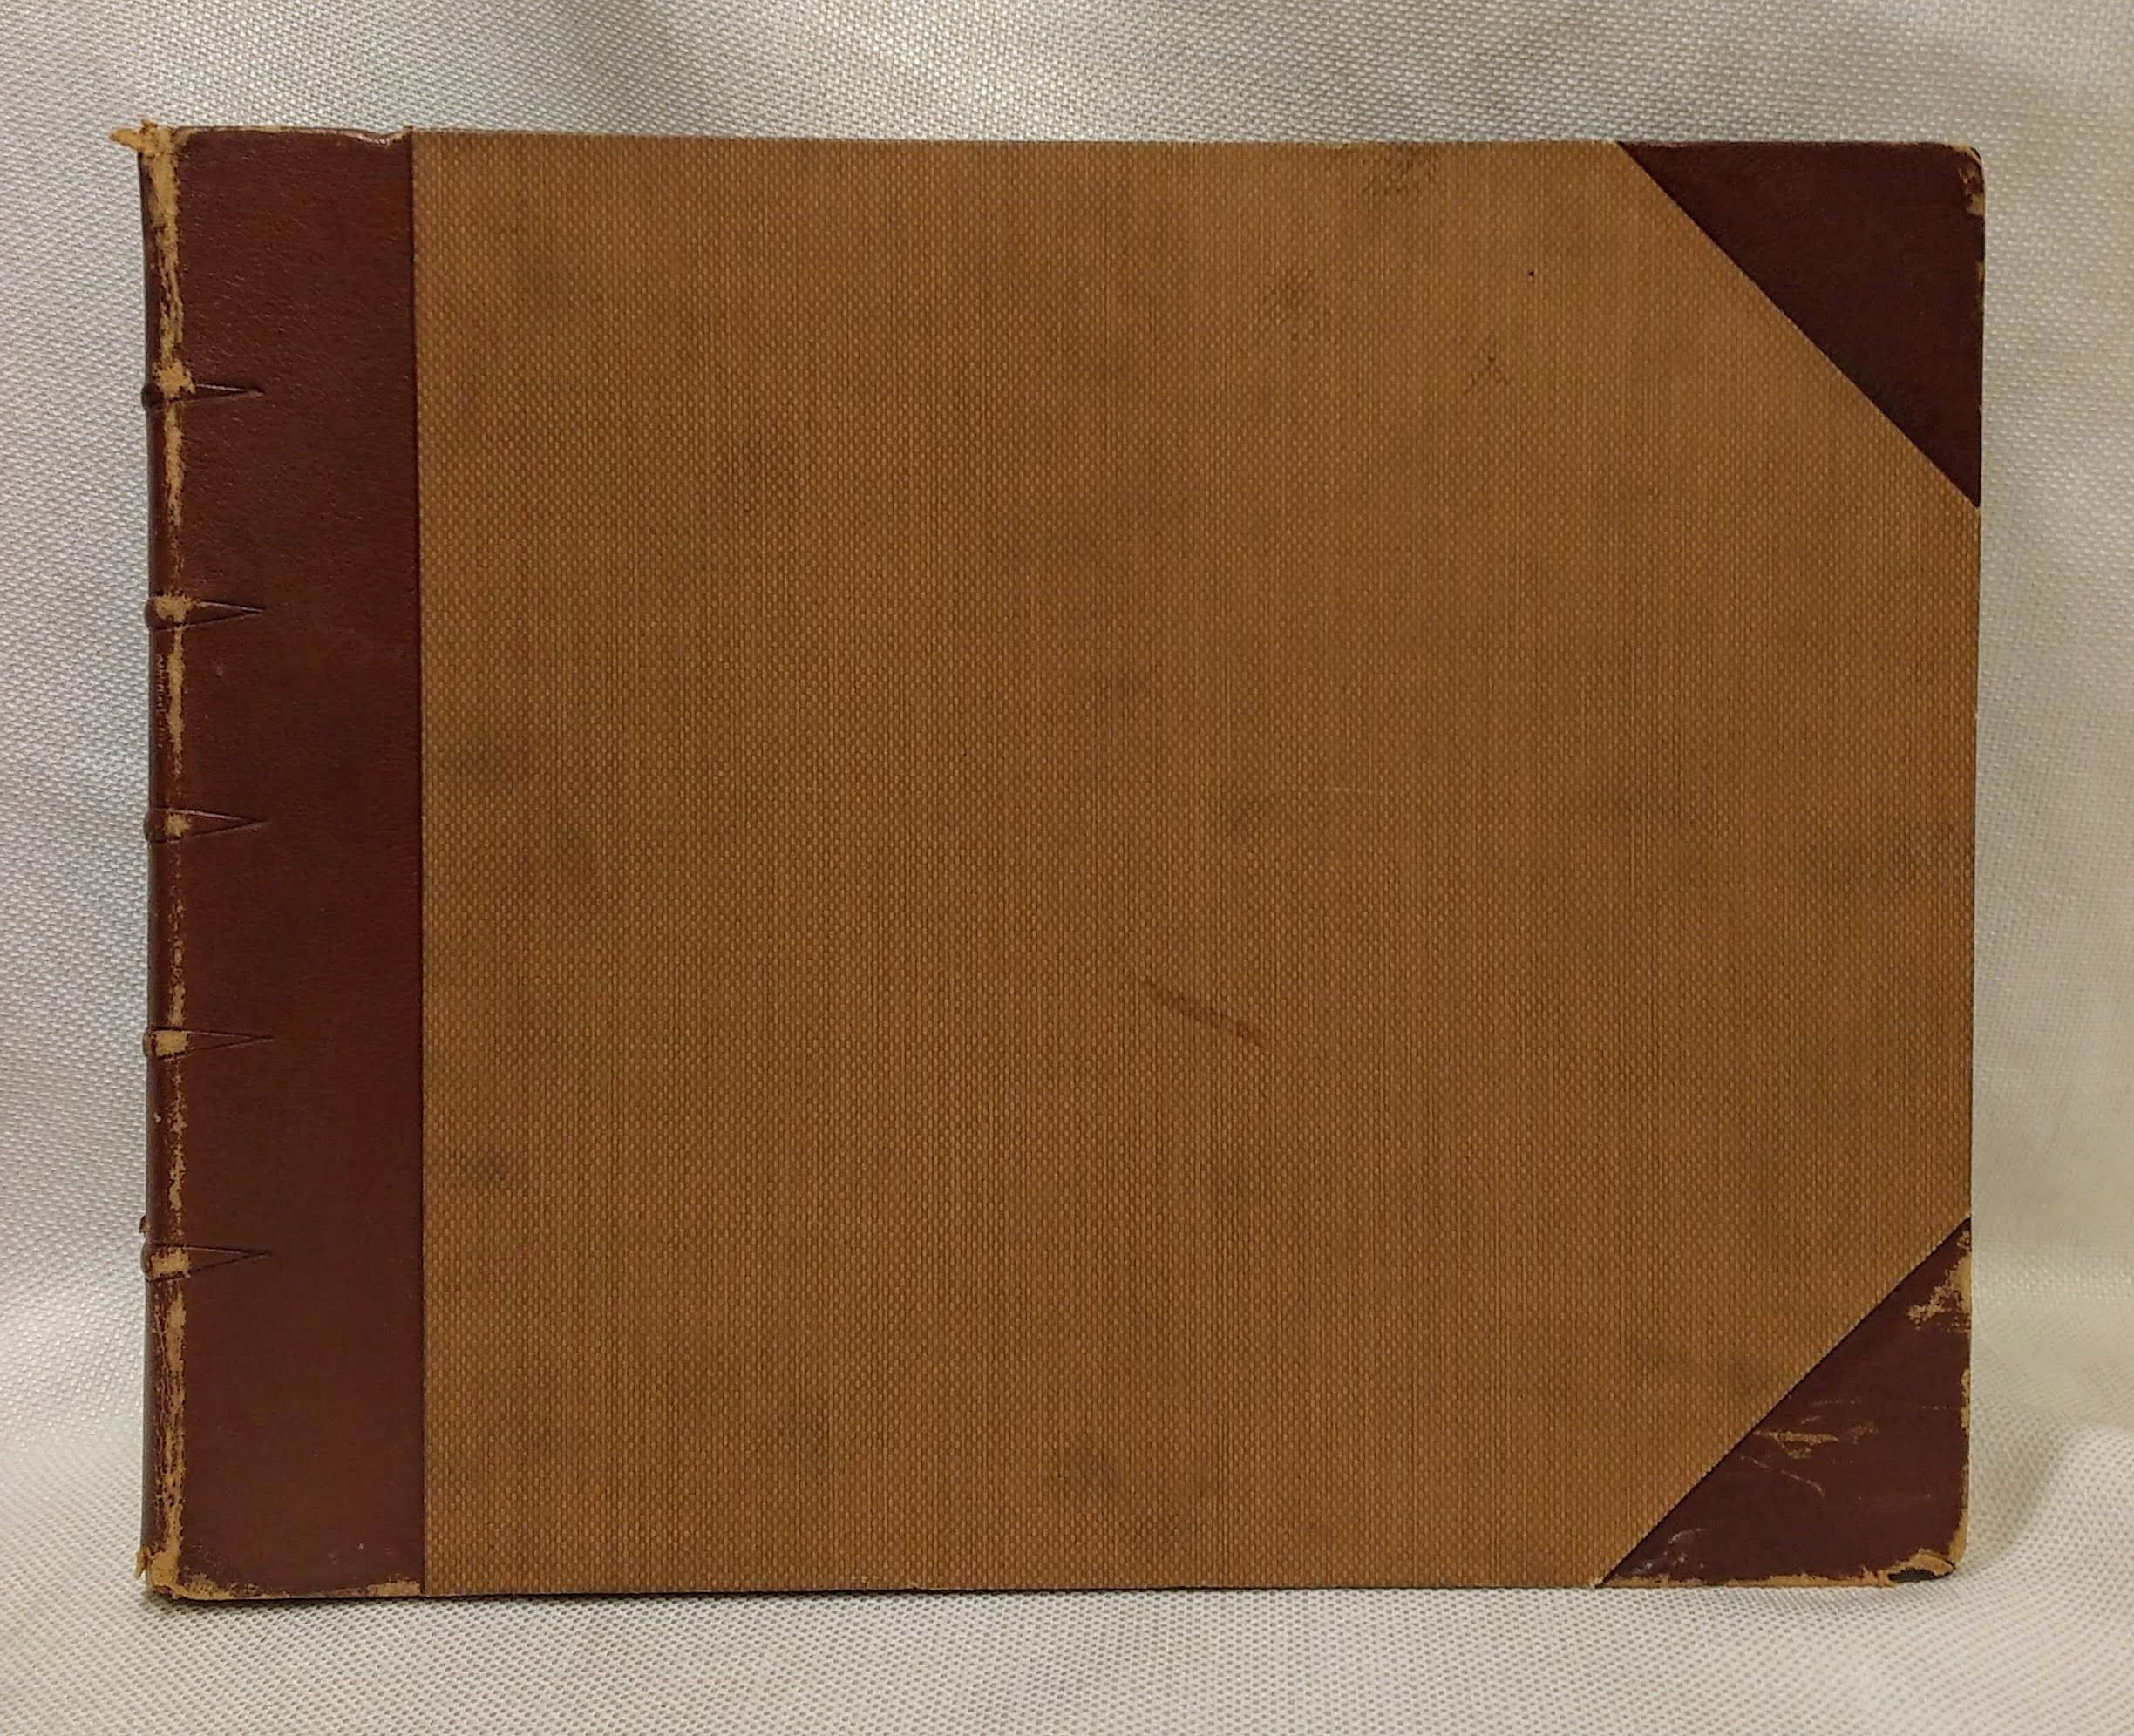 Essays on American Art and Artists, Smith, F. Hopkinson; Trumble, Alfred; Fowler, Frank; Crinkle, Nym; McKendree Bangs, William; Baer, William J.; & 27 more contributors